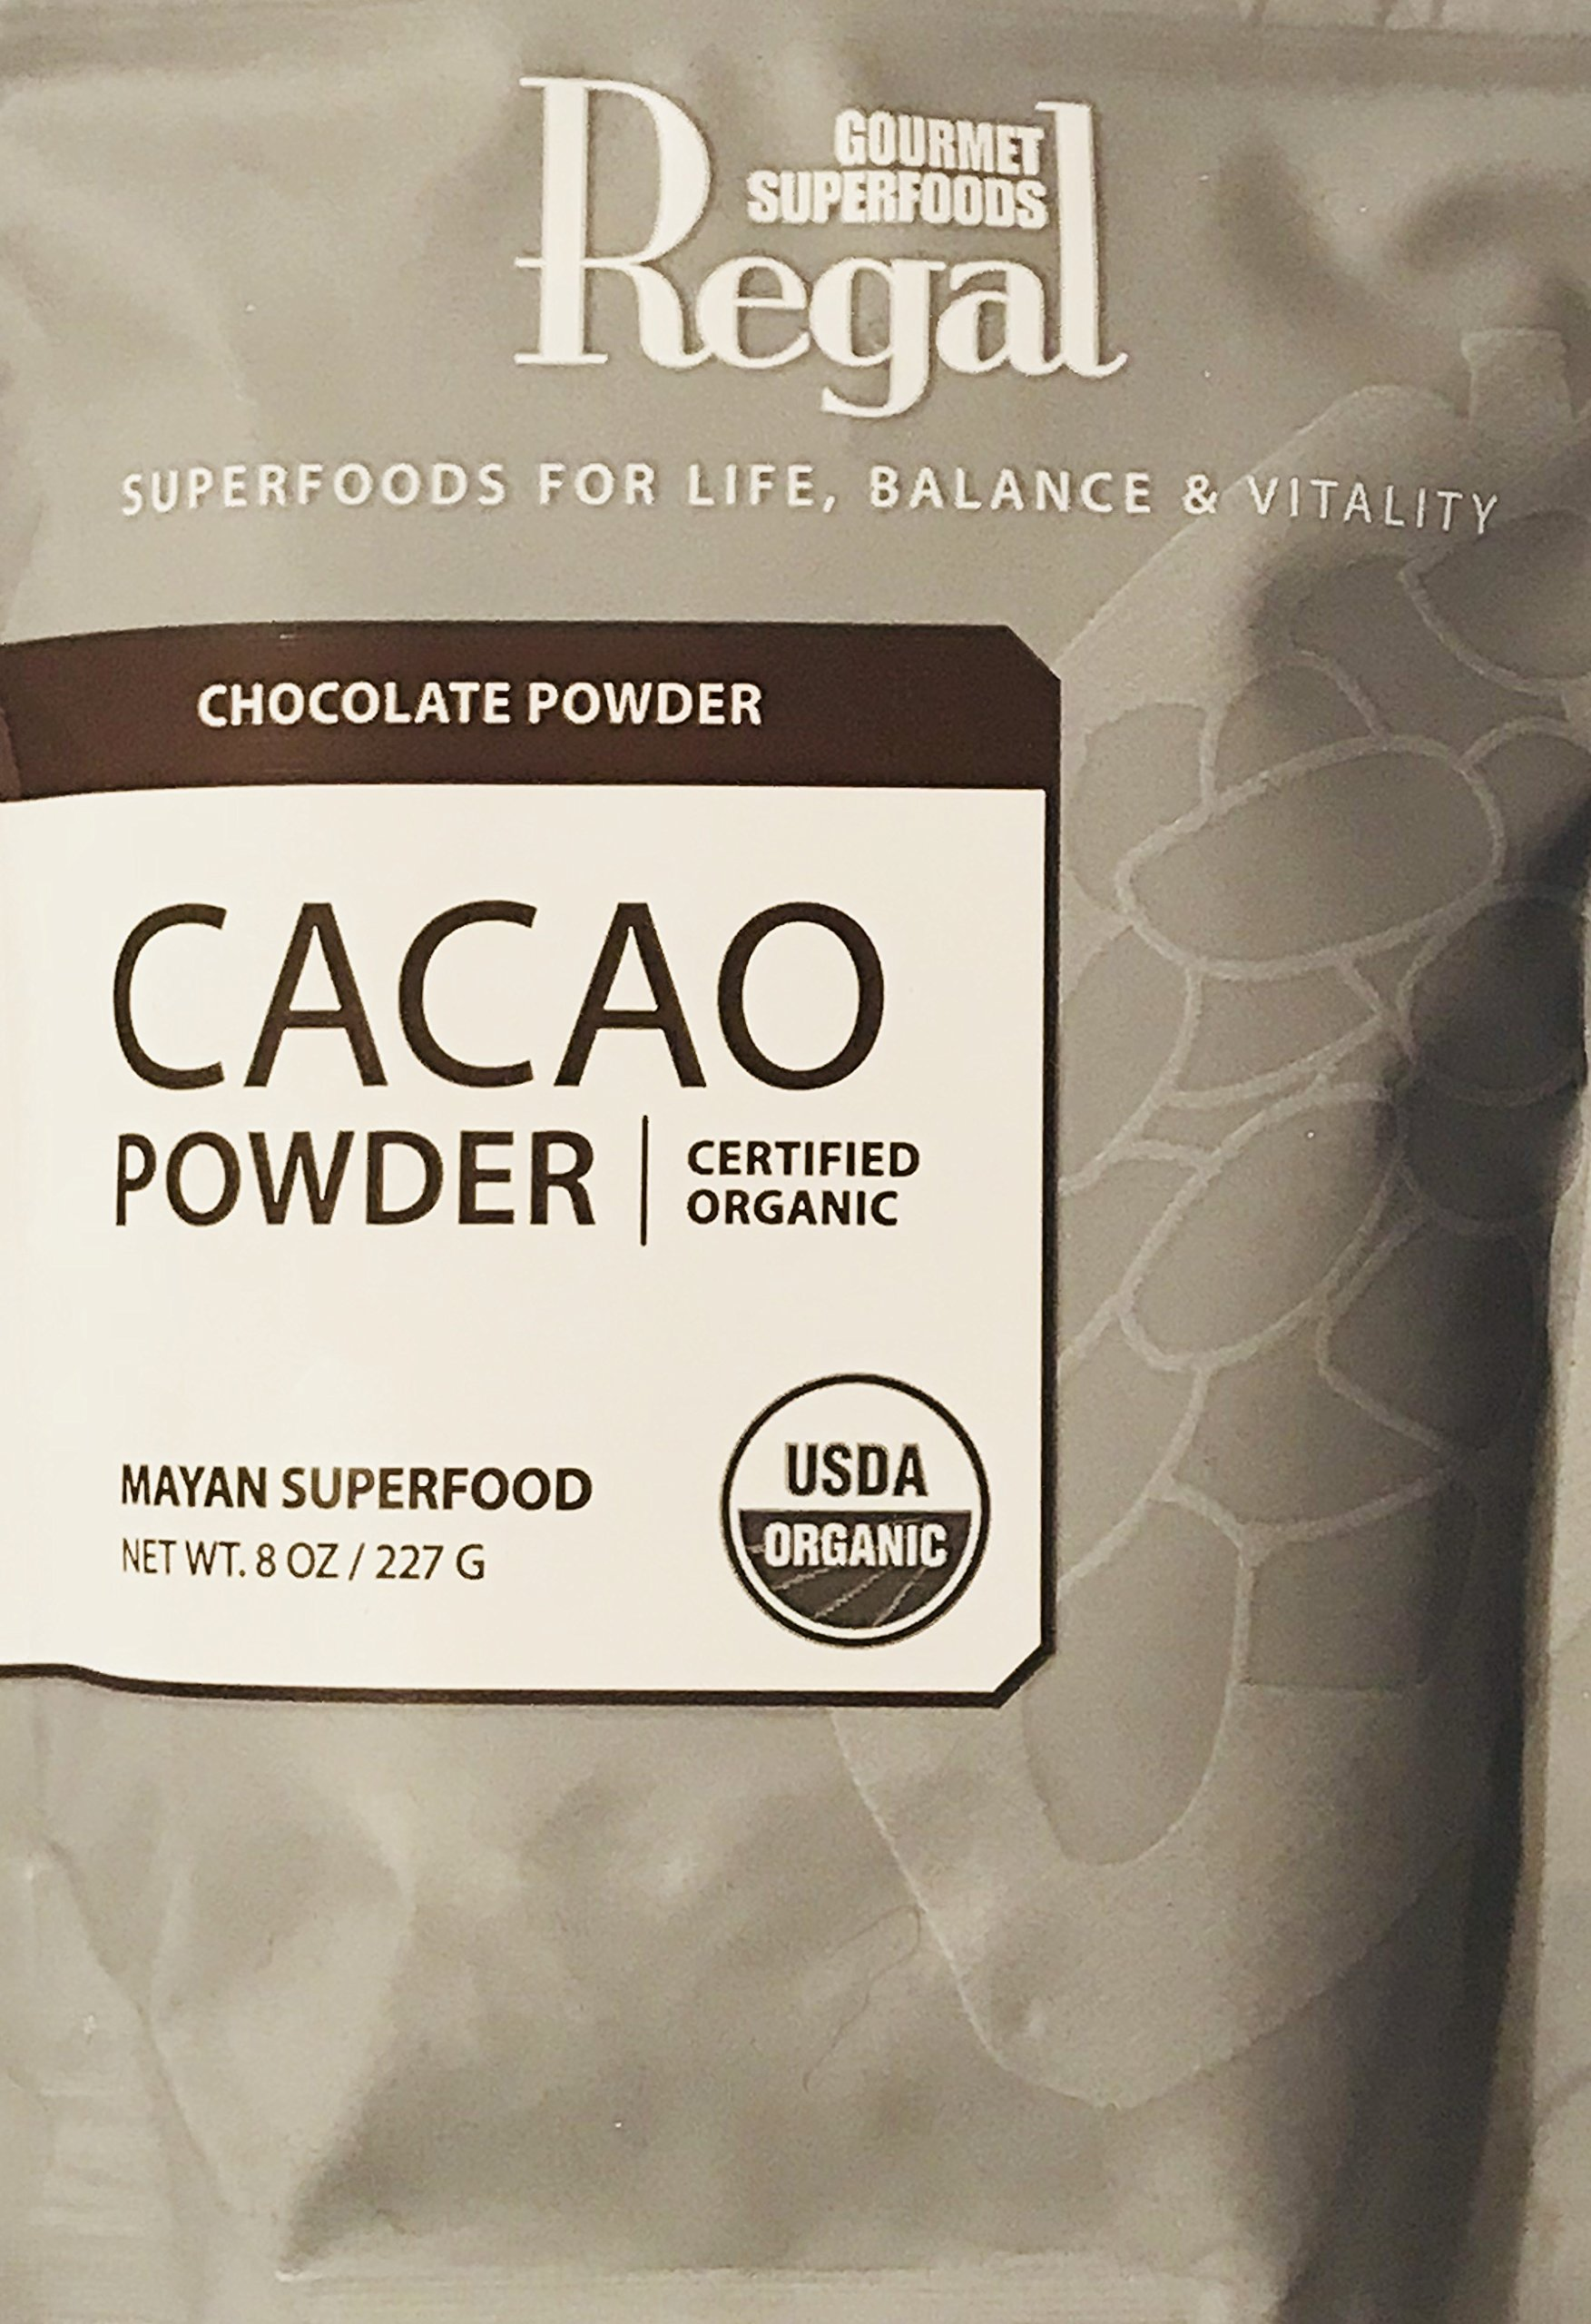 Gourmet Mayan Superfoods Cacao Powder! Certified Organic! Chocolate Powder! Add To Homemade Cookies, Fruit Smoothies, Ice Crean Shakes Or Milk! Great Source Of Antioxidants!